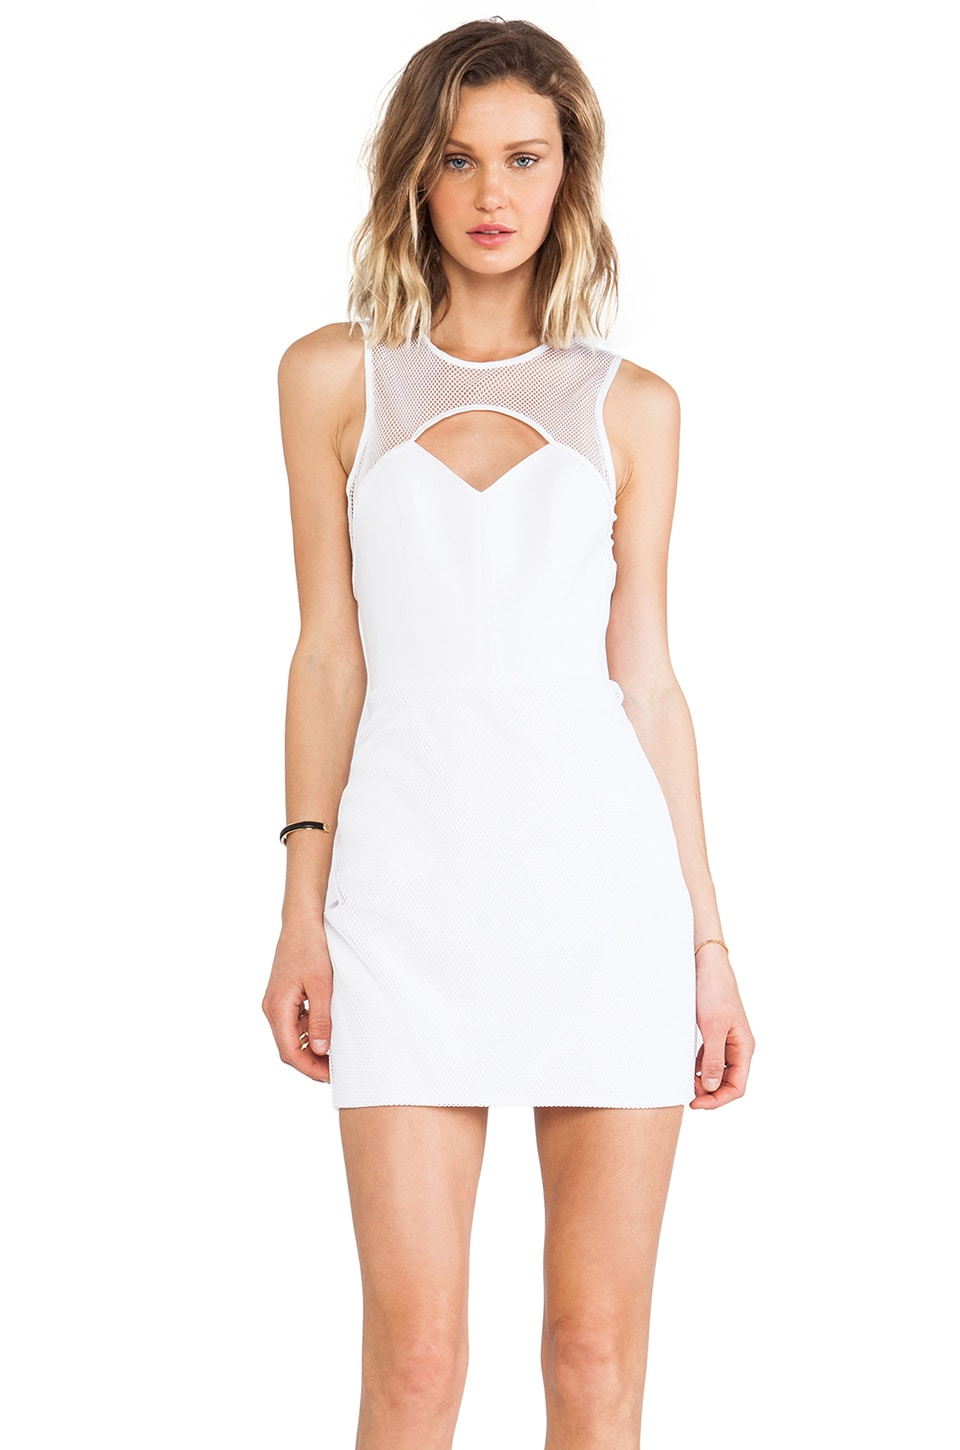 Naven Mesh Cutout Dress in White